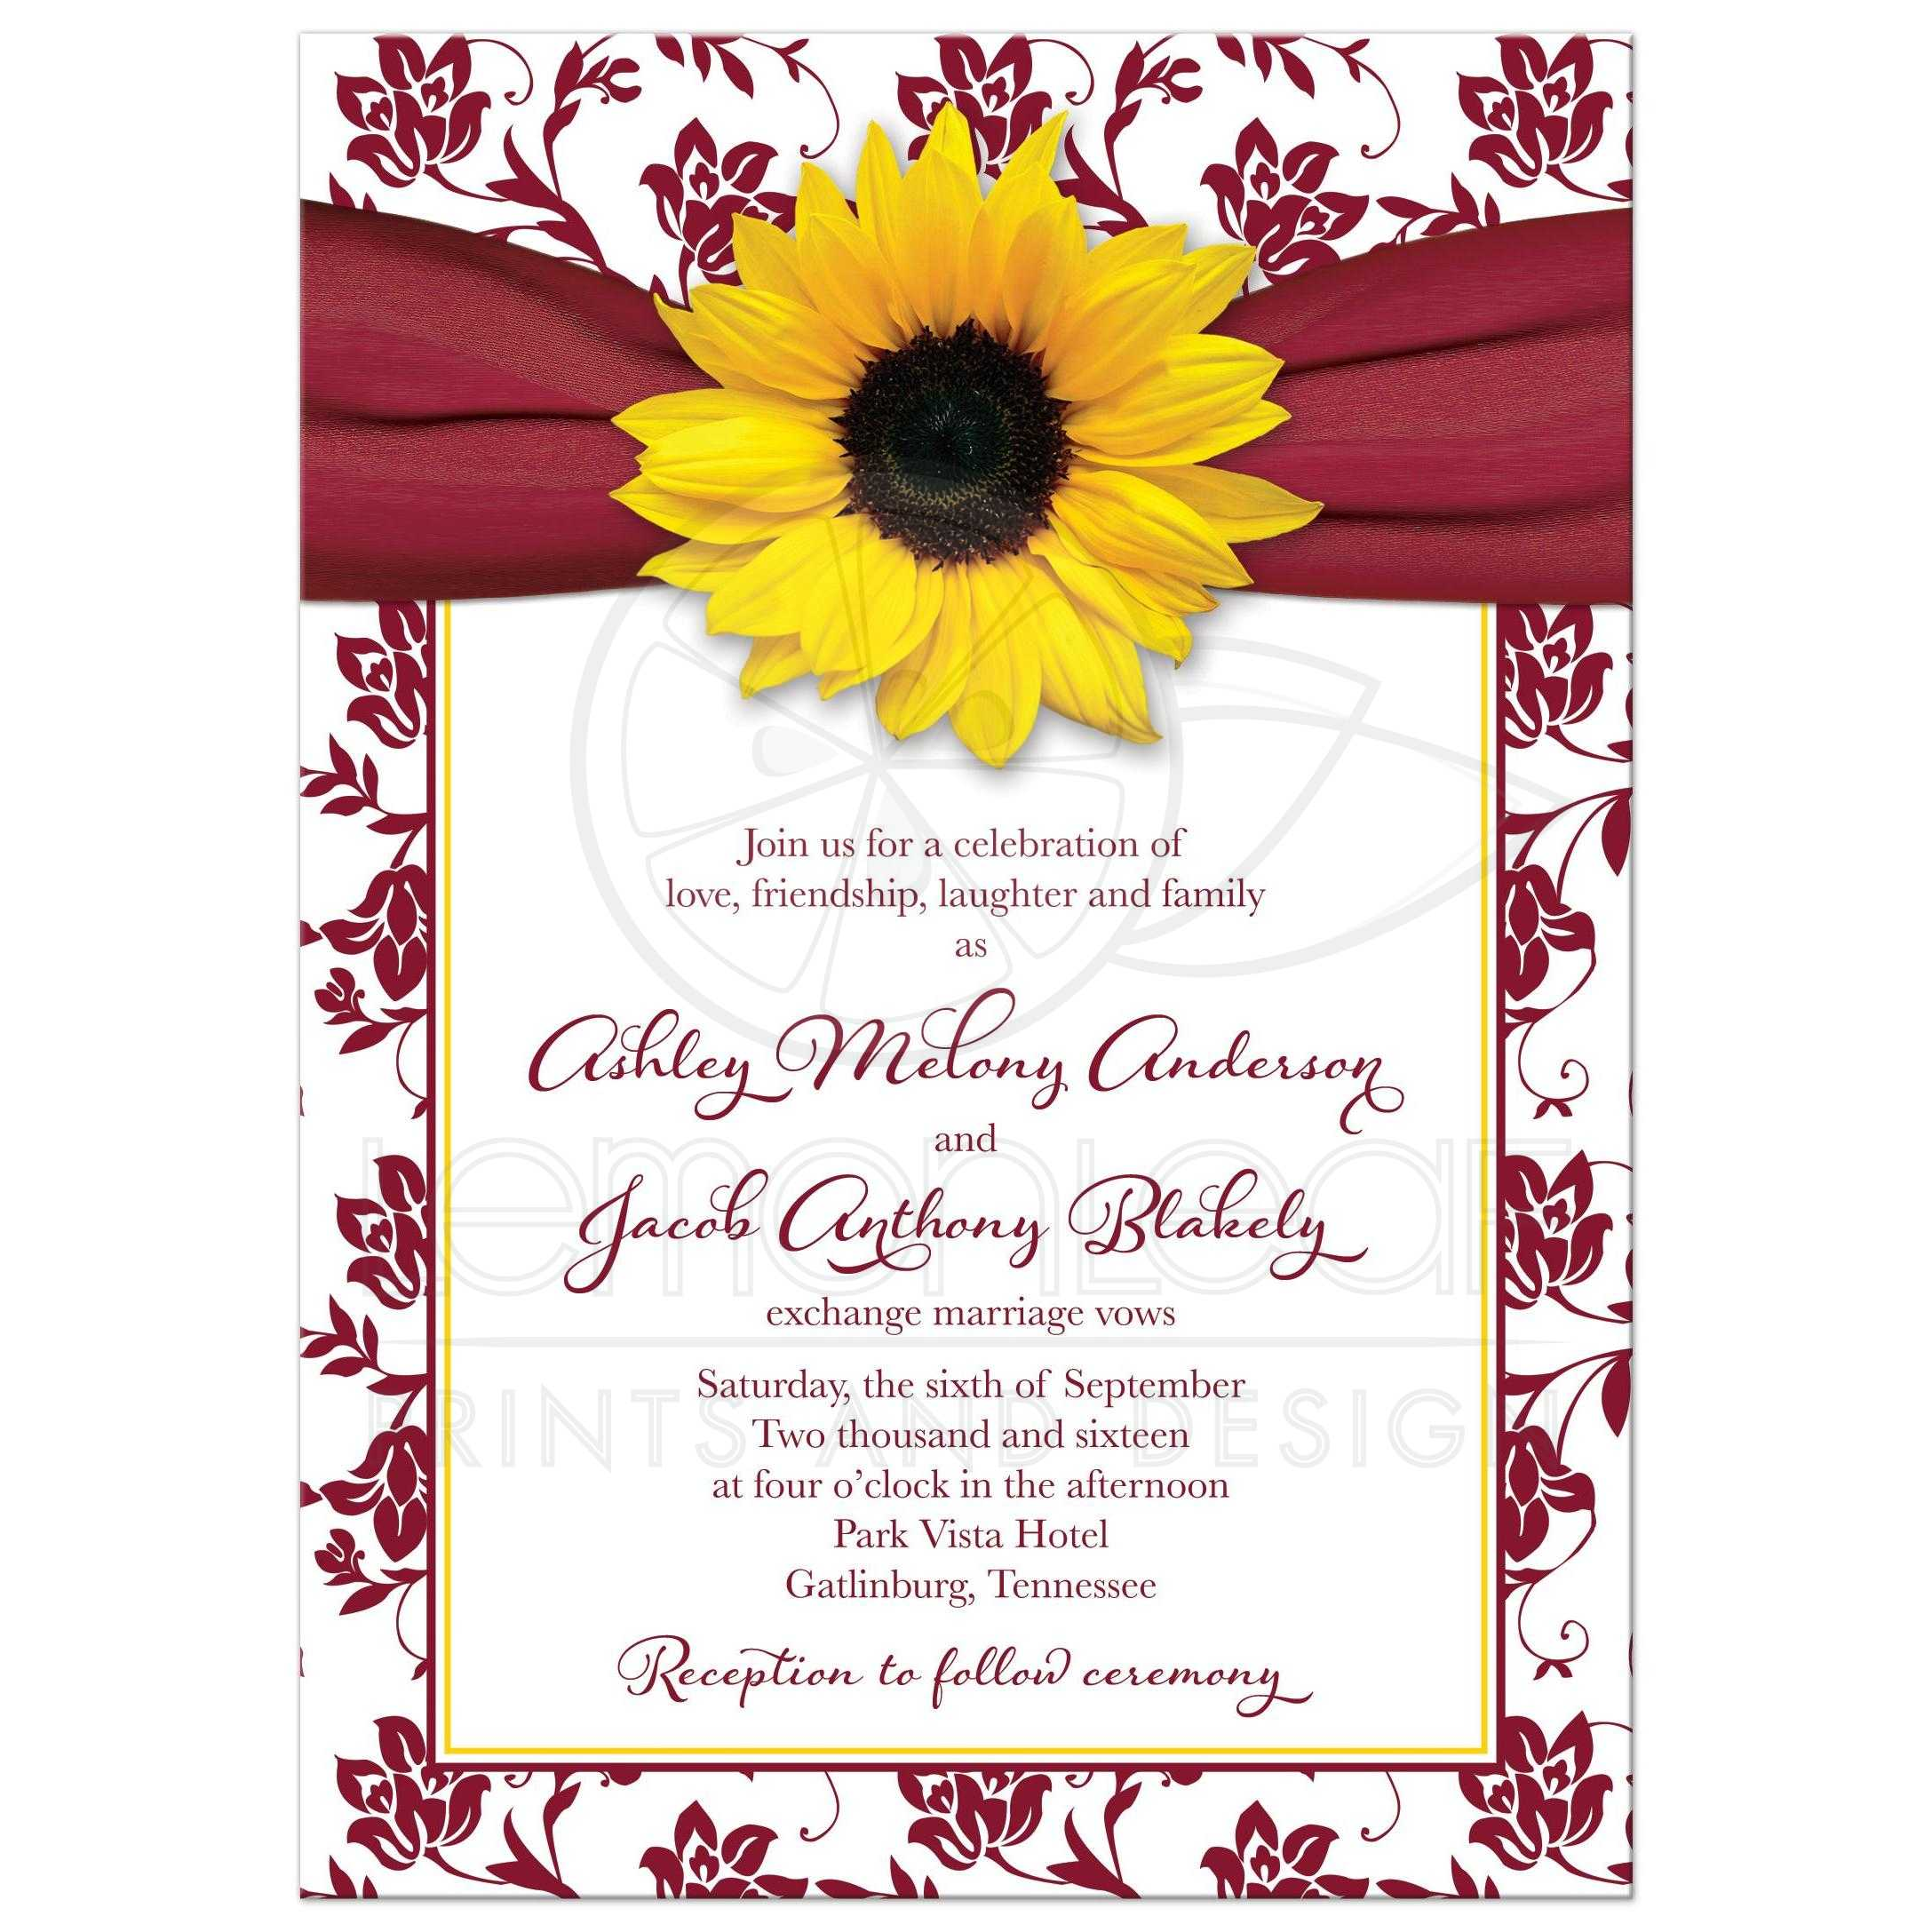 Fall Sunflower Wedding Invitation Burgundy Yellow